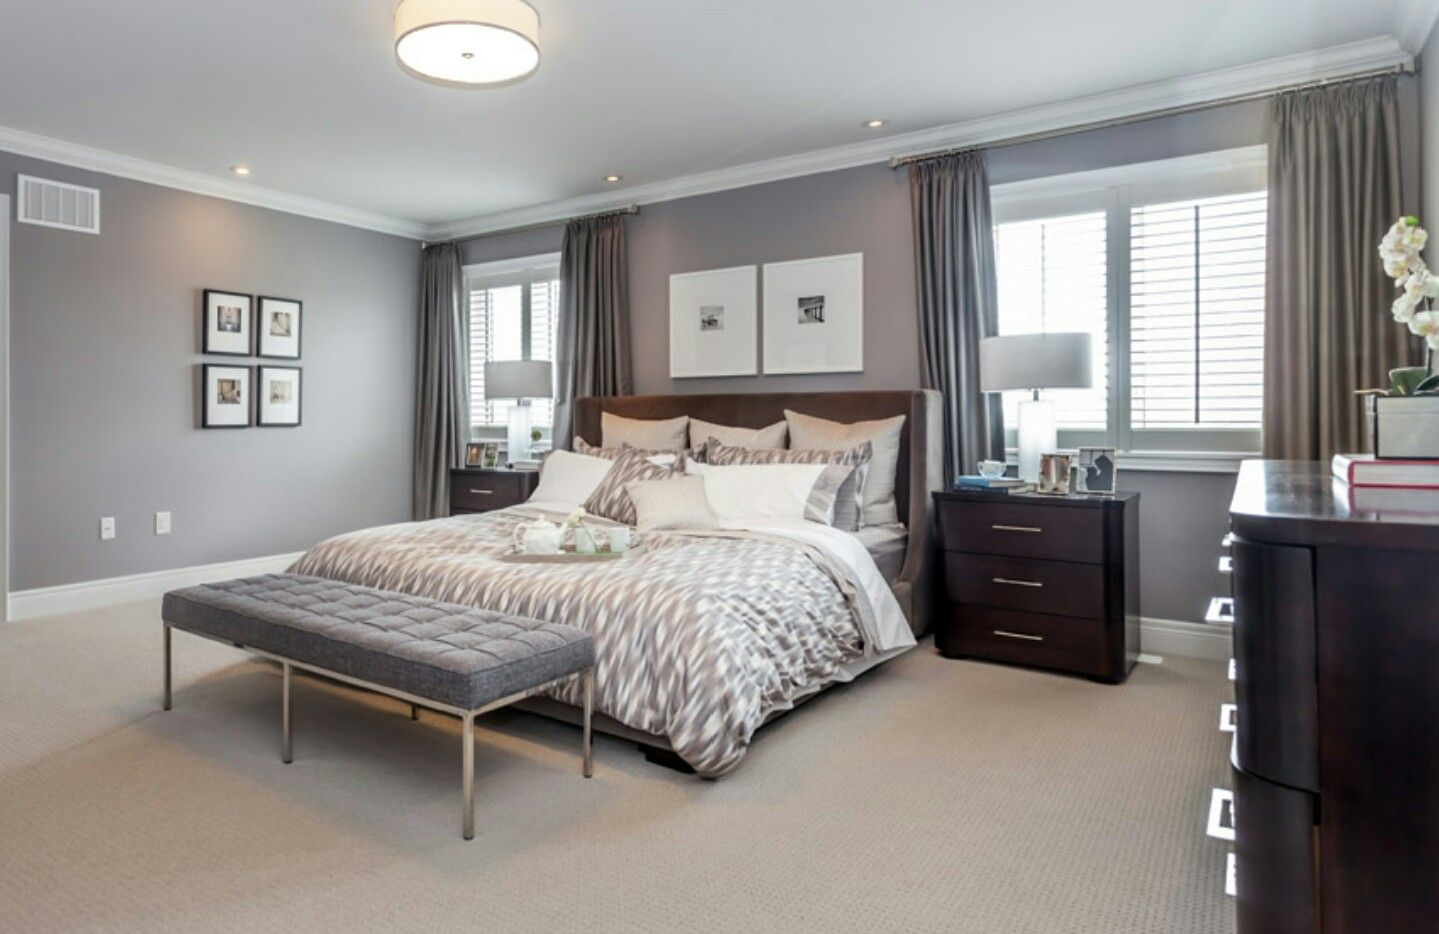 Best Pin By Amber Taylor On Household Projects Bedroom Carpet 400 x 300